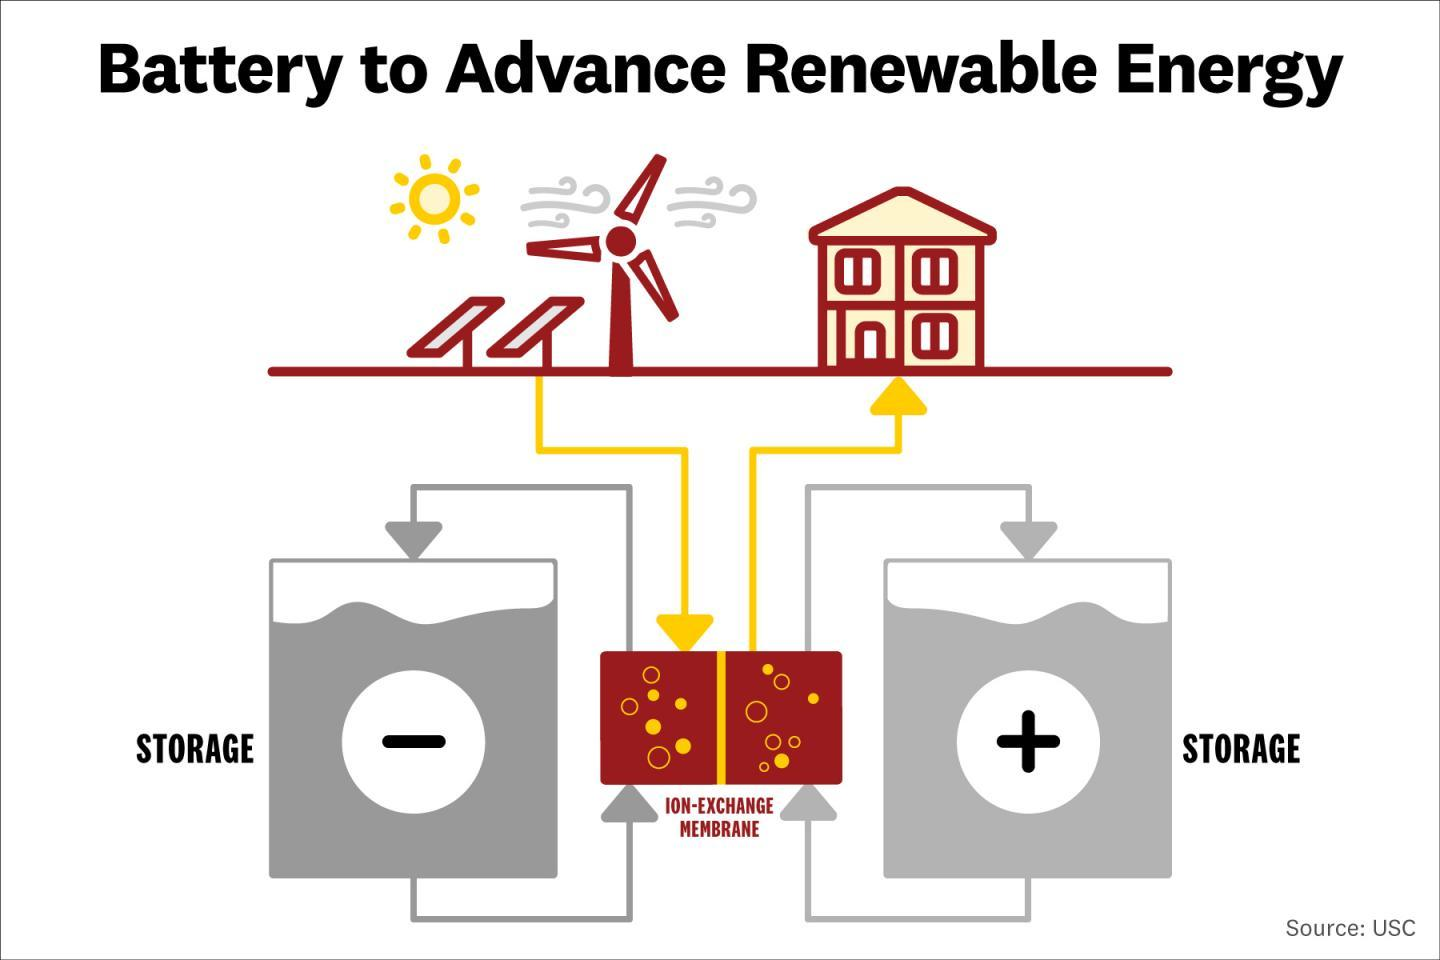 Diagram illustrating how the redox flow battery is expected to work